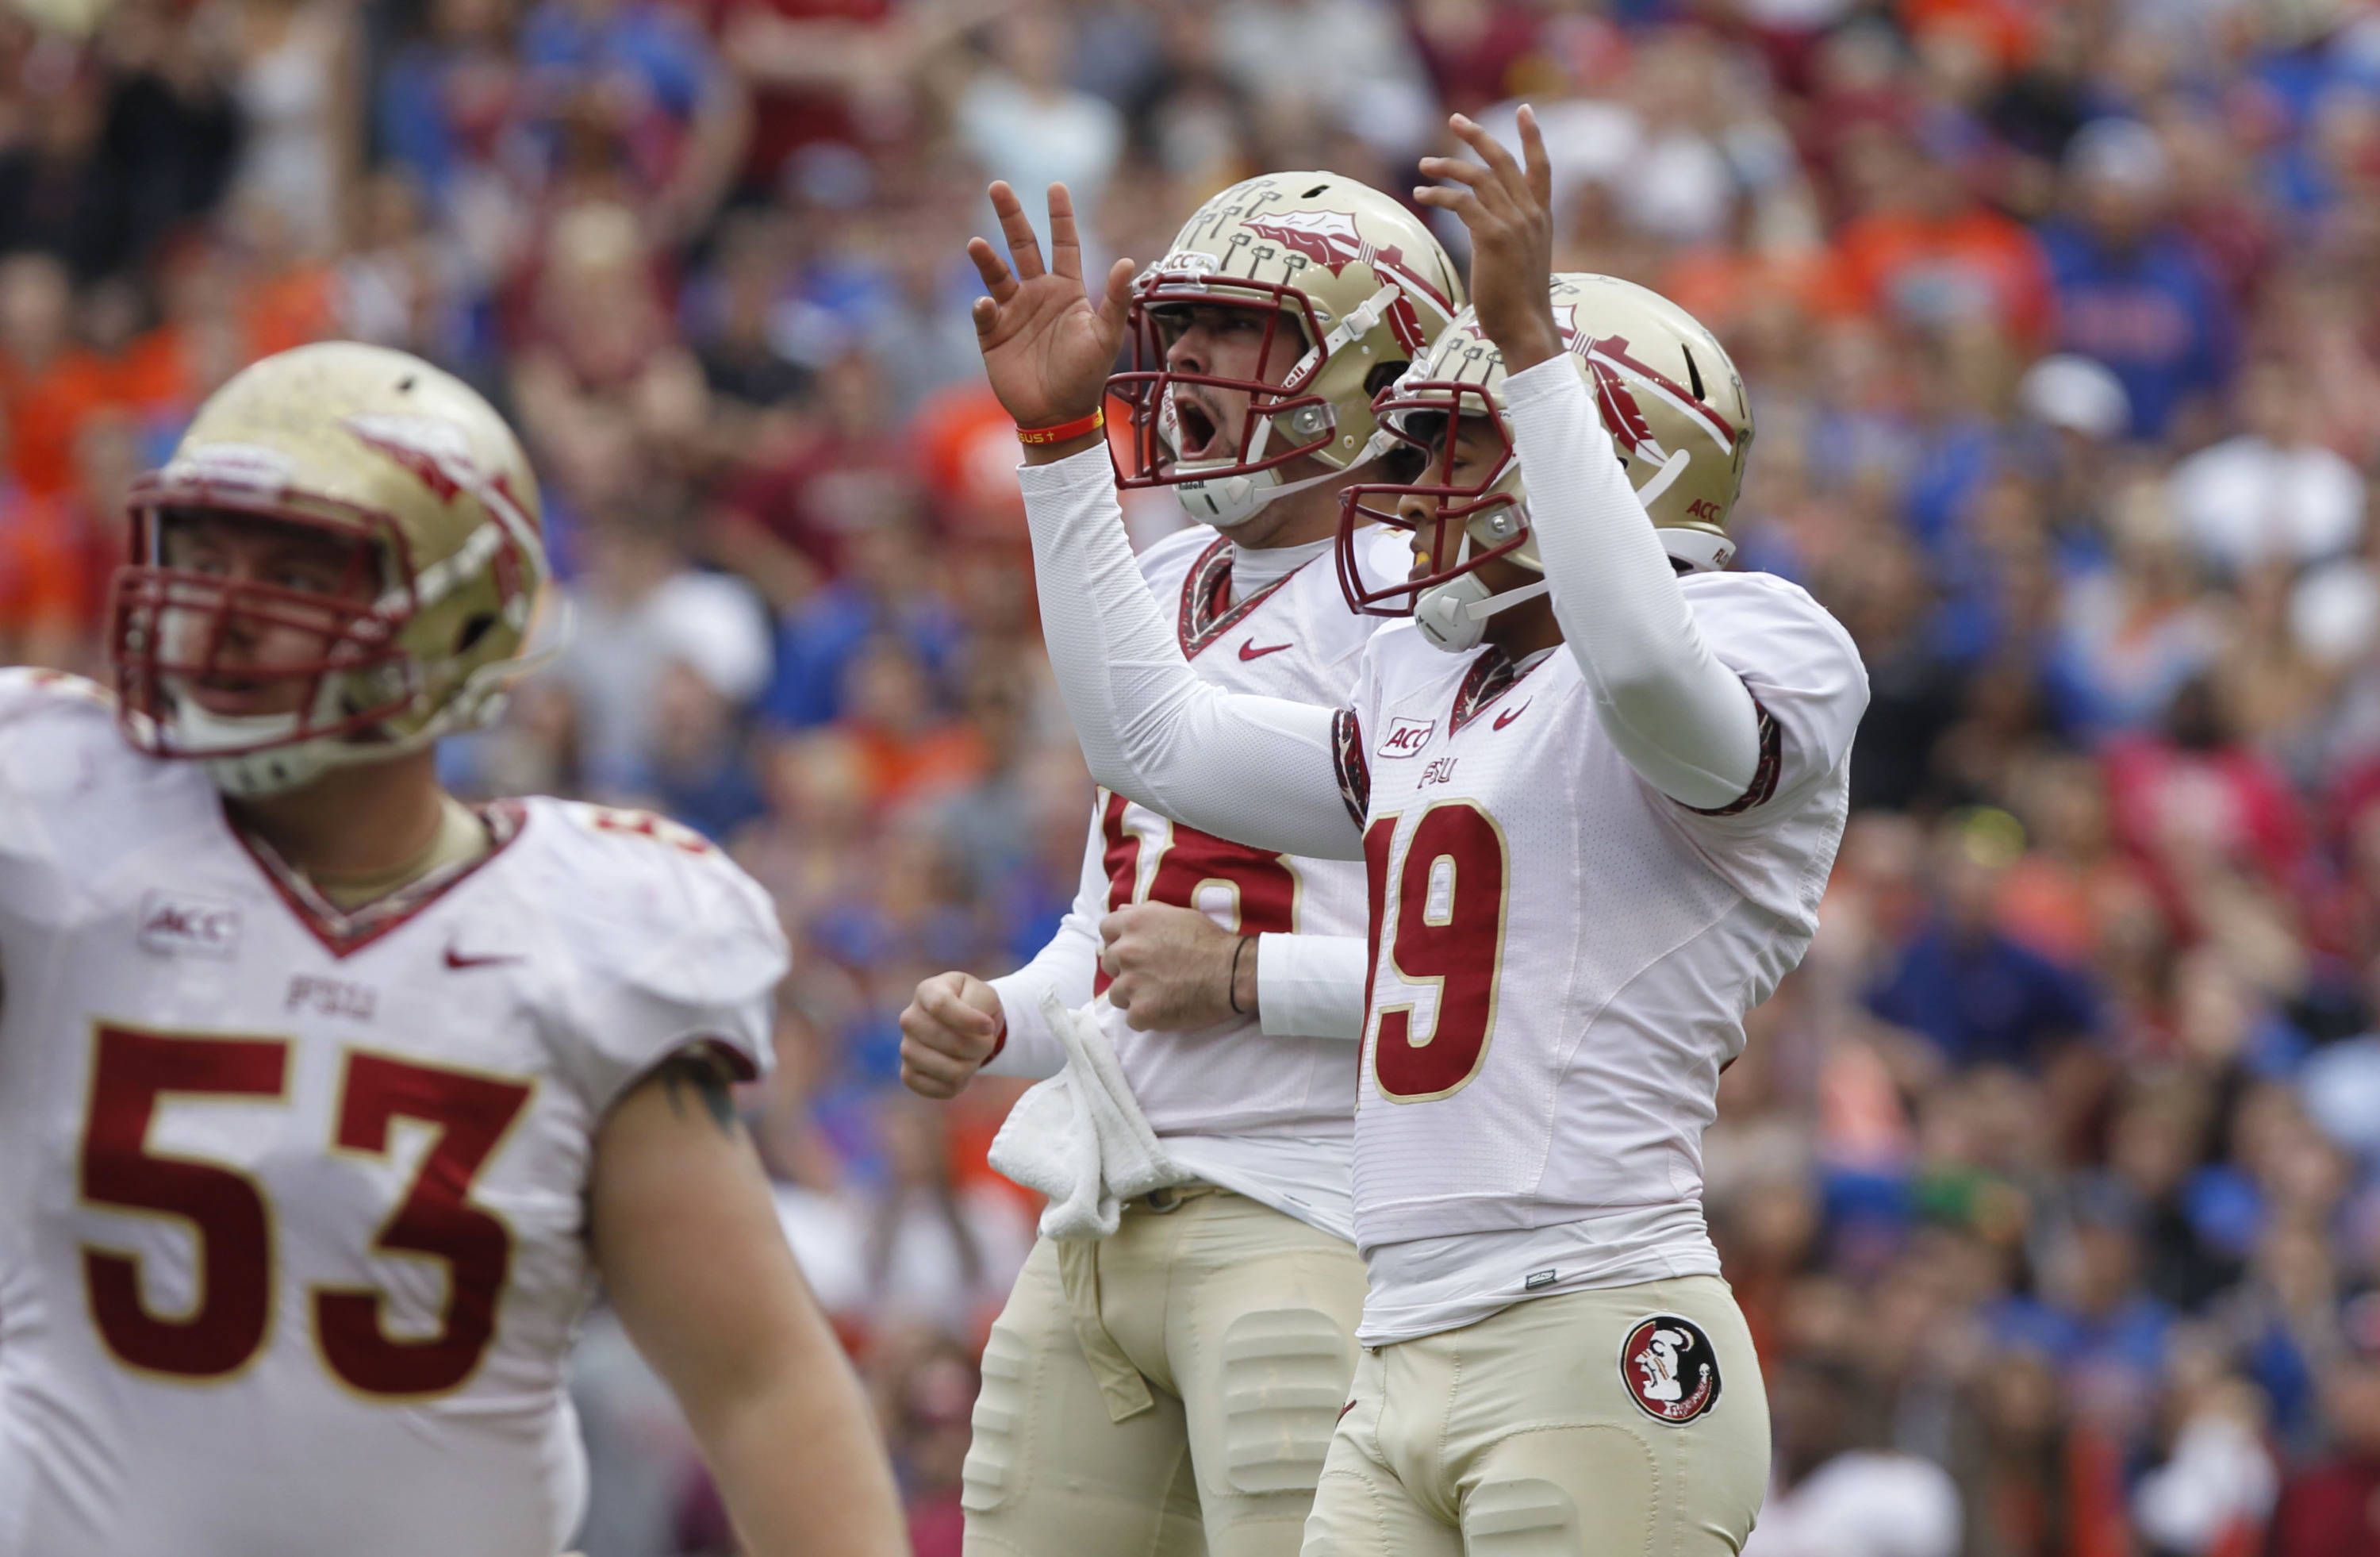 Roberto Aguayo (19) kicks a field goal as punter Cason Beatty (38) celebrates. Mandatory Credit: Kim Klement-USA TODAY Sports